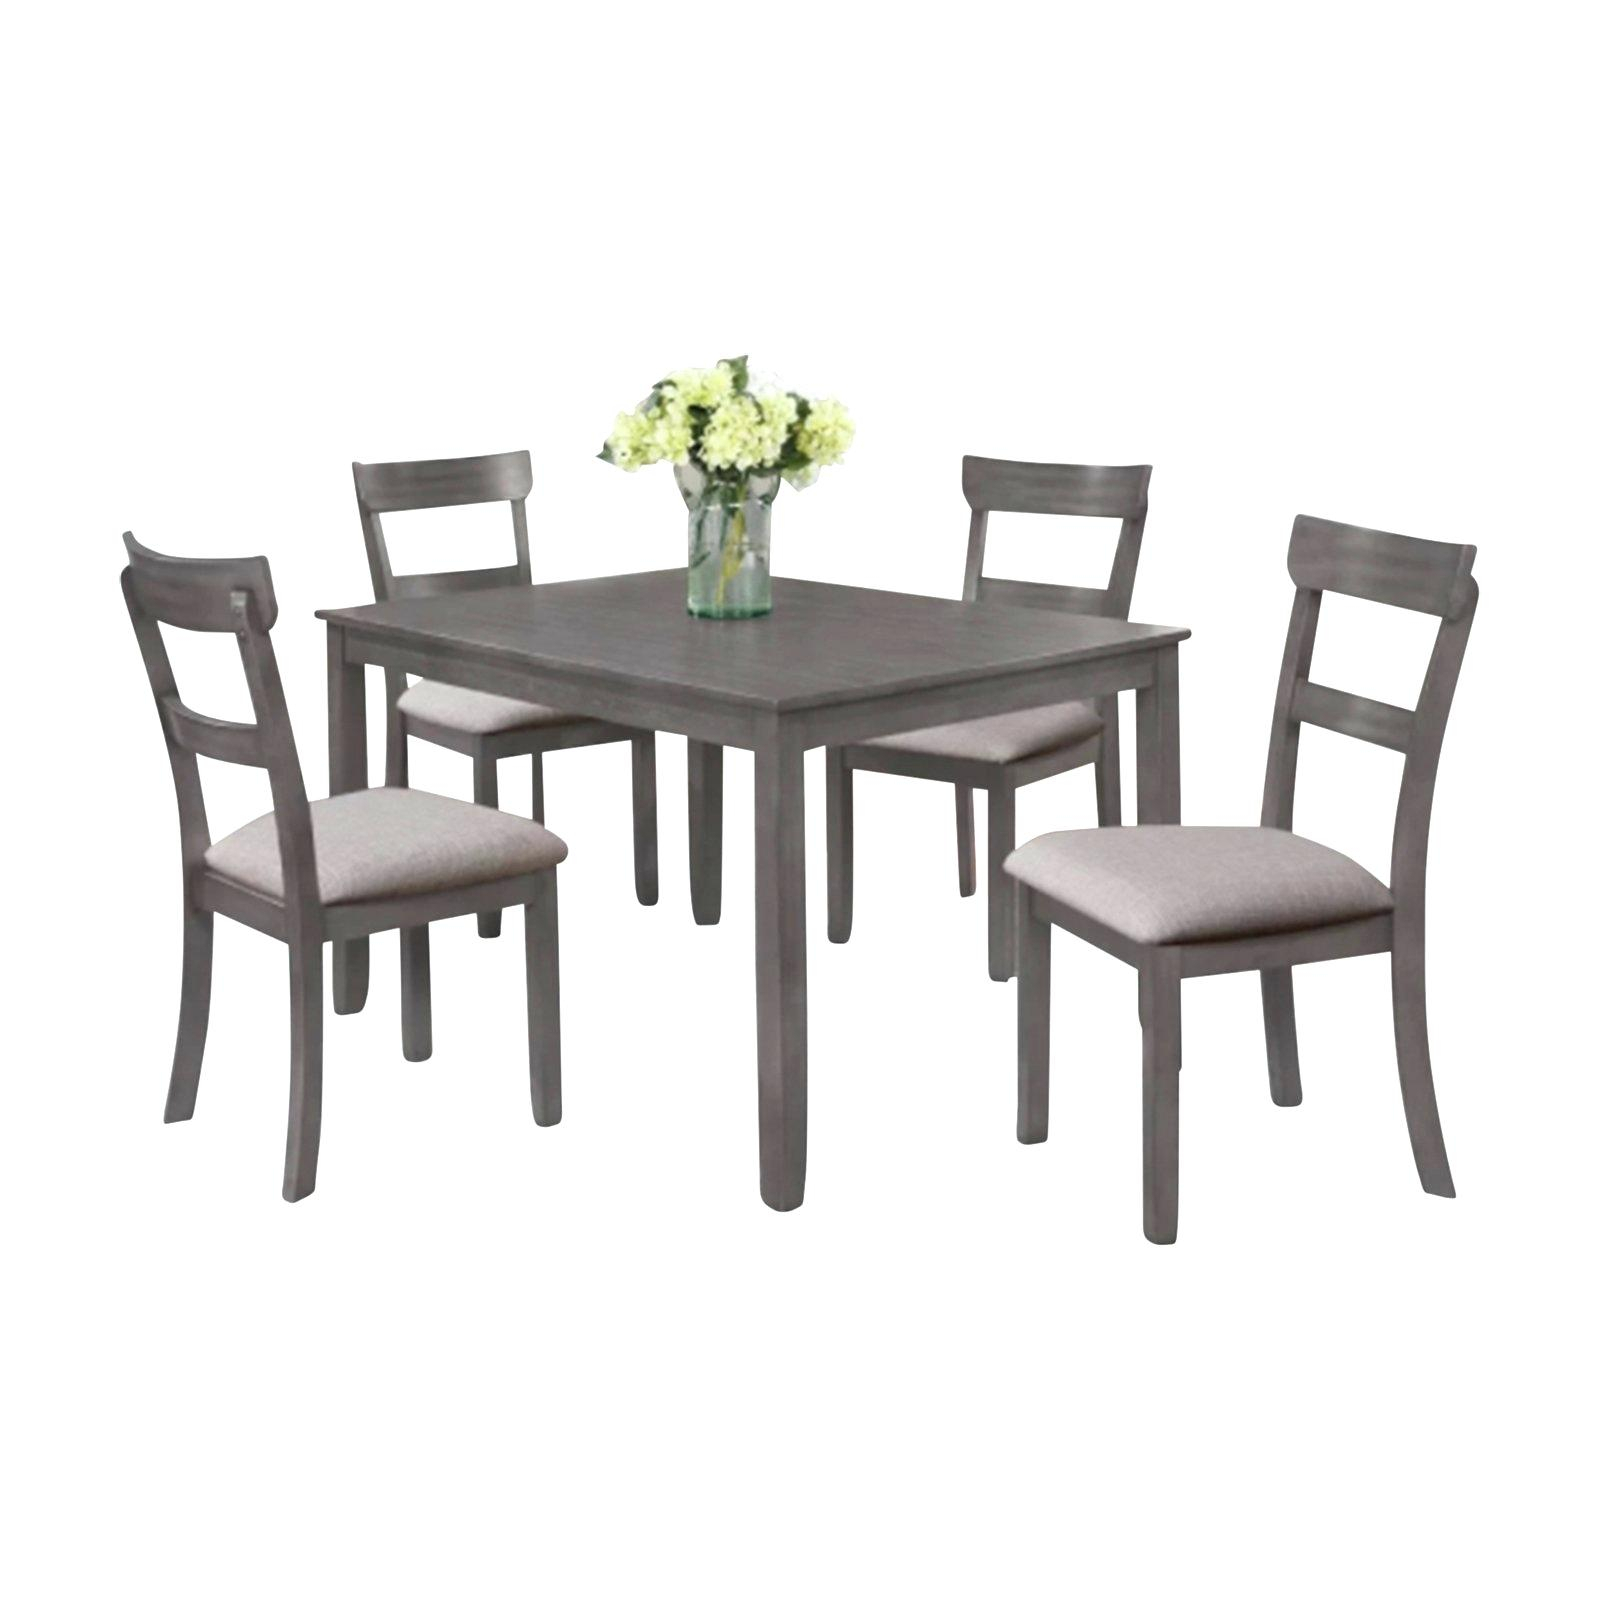 White And Gray Dining Table – Insidestories In Best And Newest Black Wash Banks Extending Dining Tables (View 7 of 25)